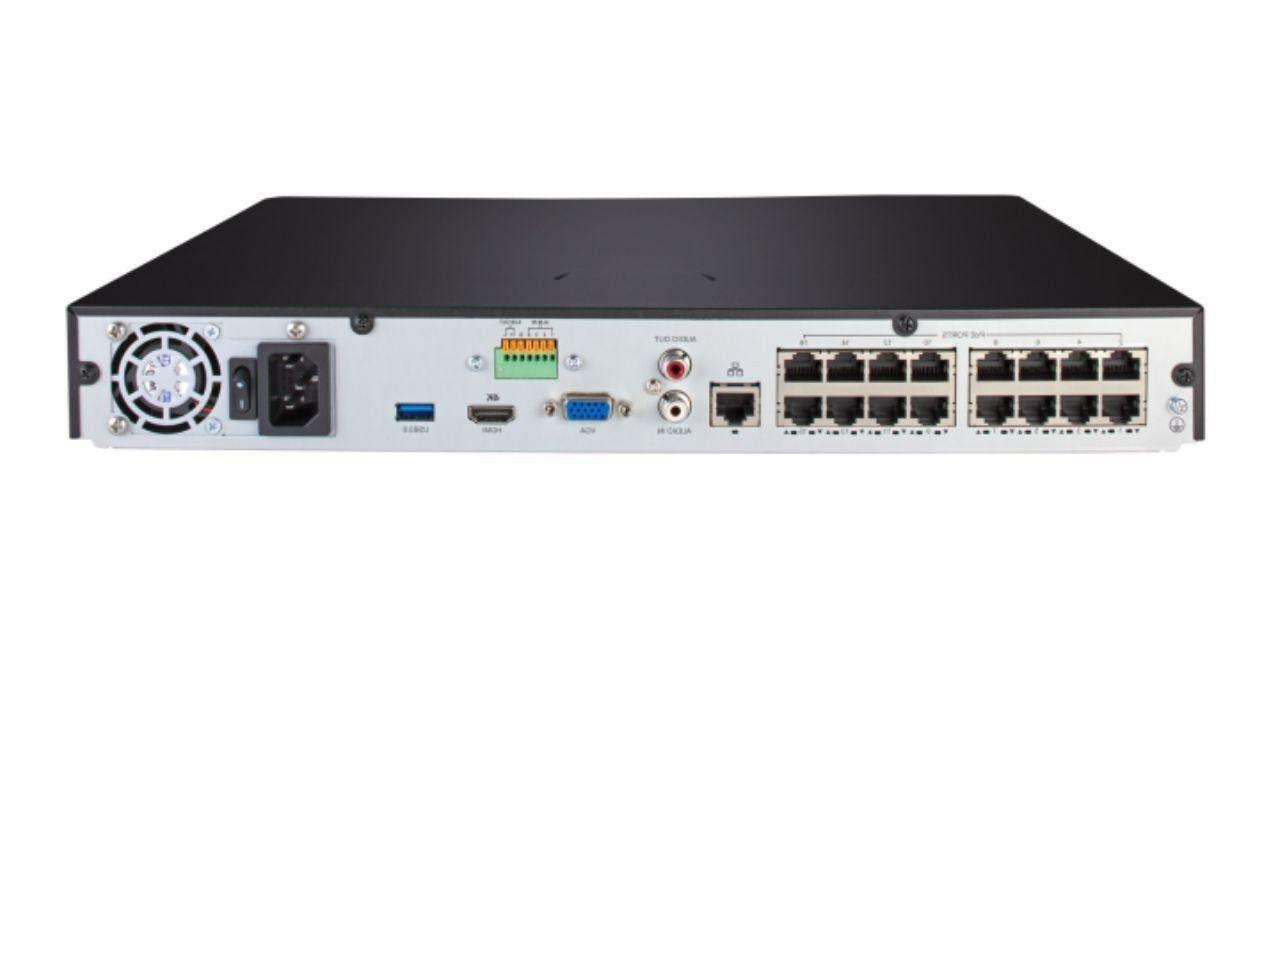 4K ULTRA HD CHANNEL SYSTEM WITH 4TB AND 16 4K